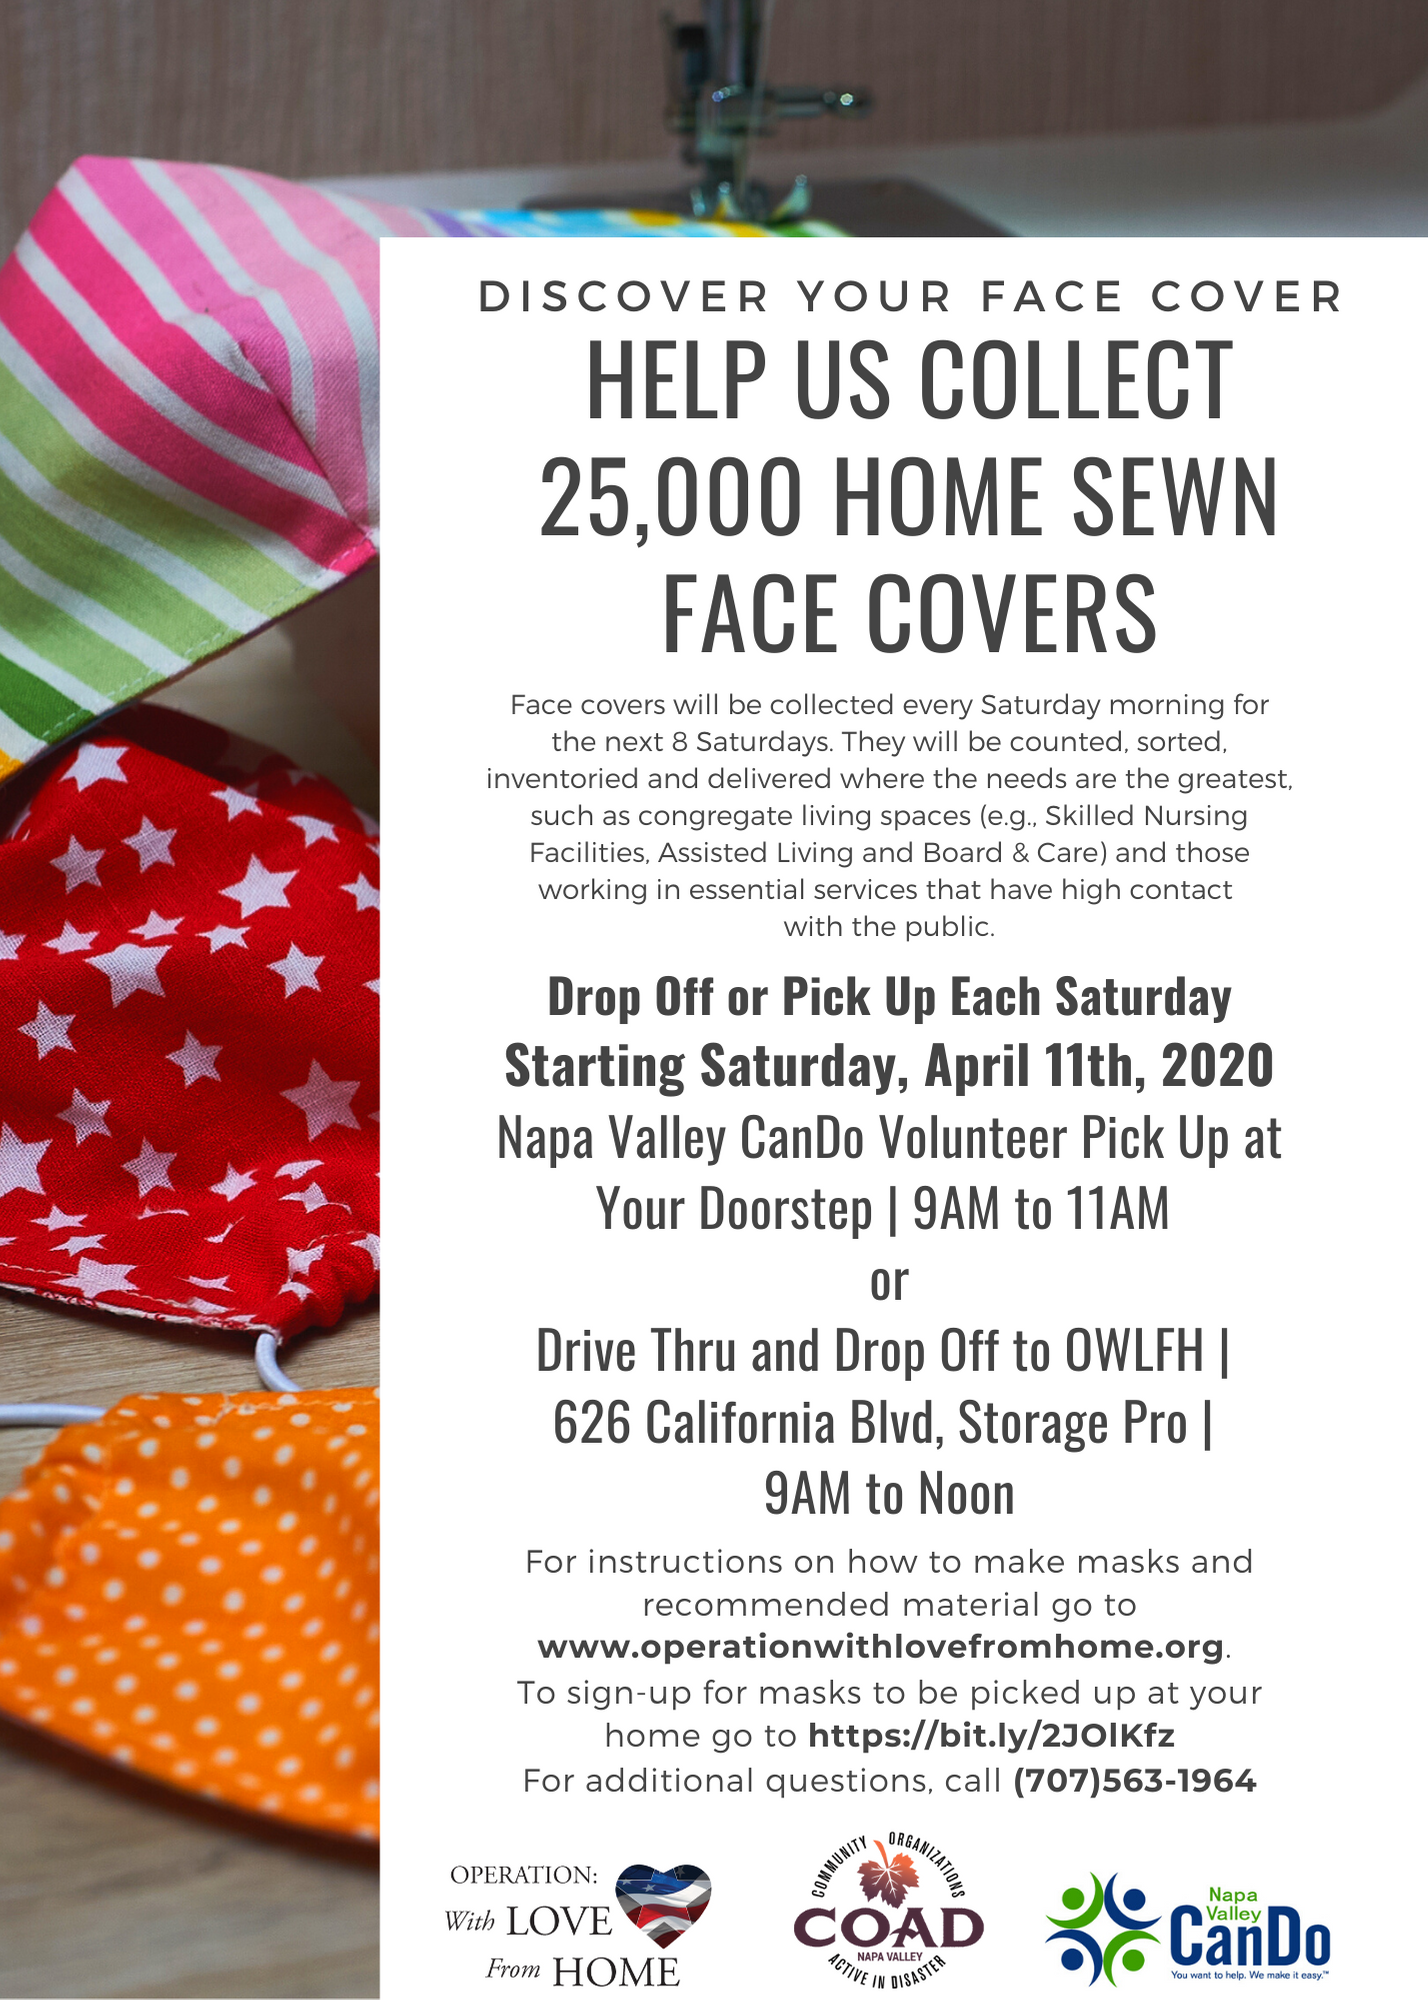 Community Drive for Home-sewn Face Coverings: click to access PDF version of this image